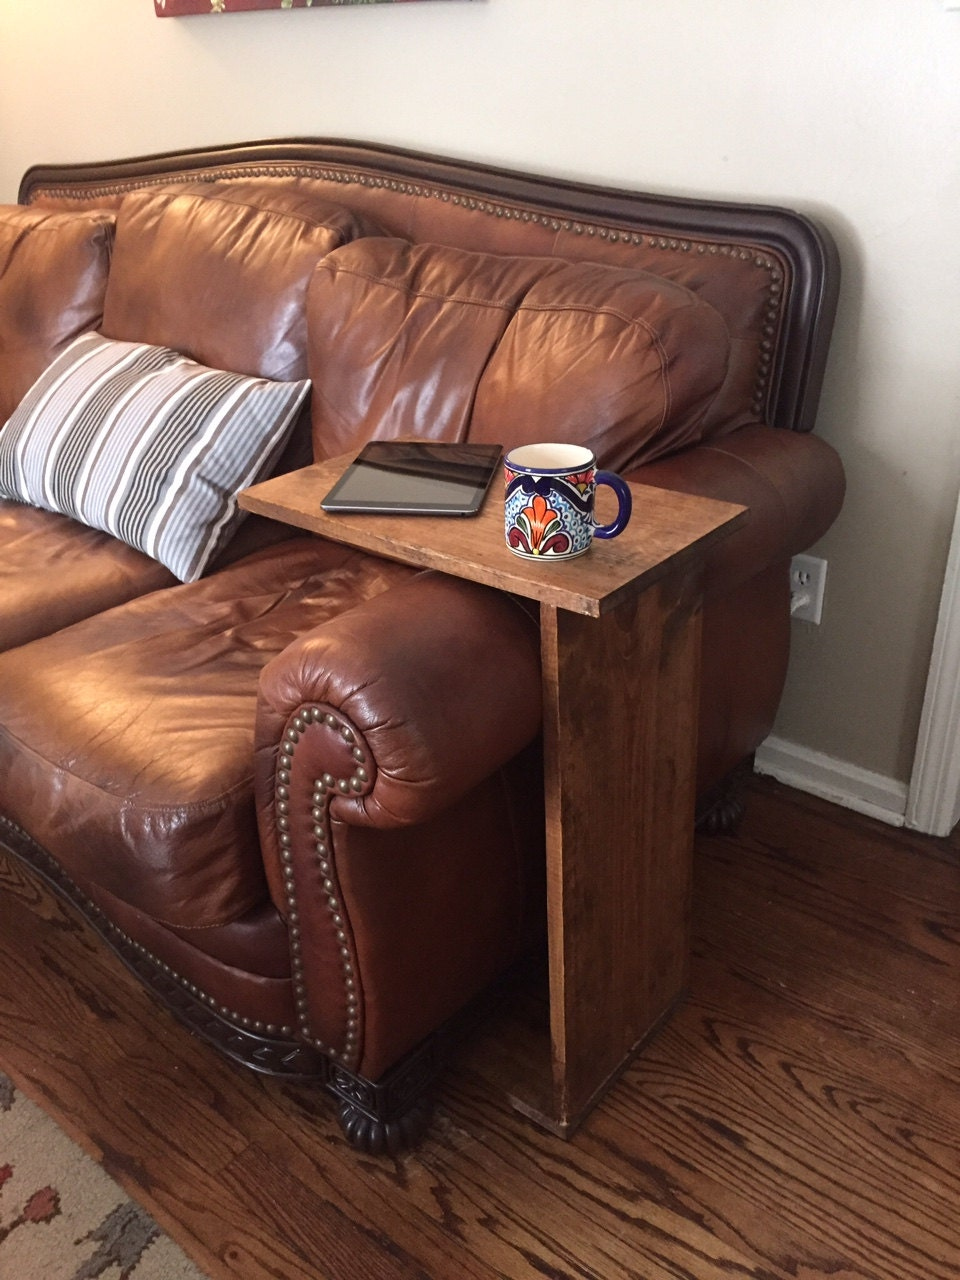 Couch And Chair Tv Tray Arm Rest Wood By Elliscustomcreations